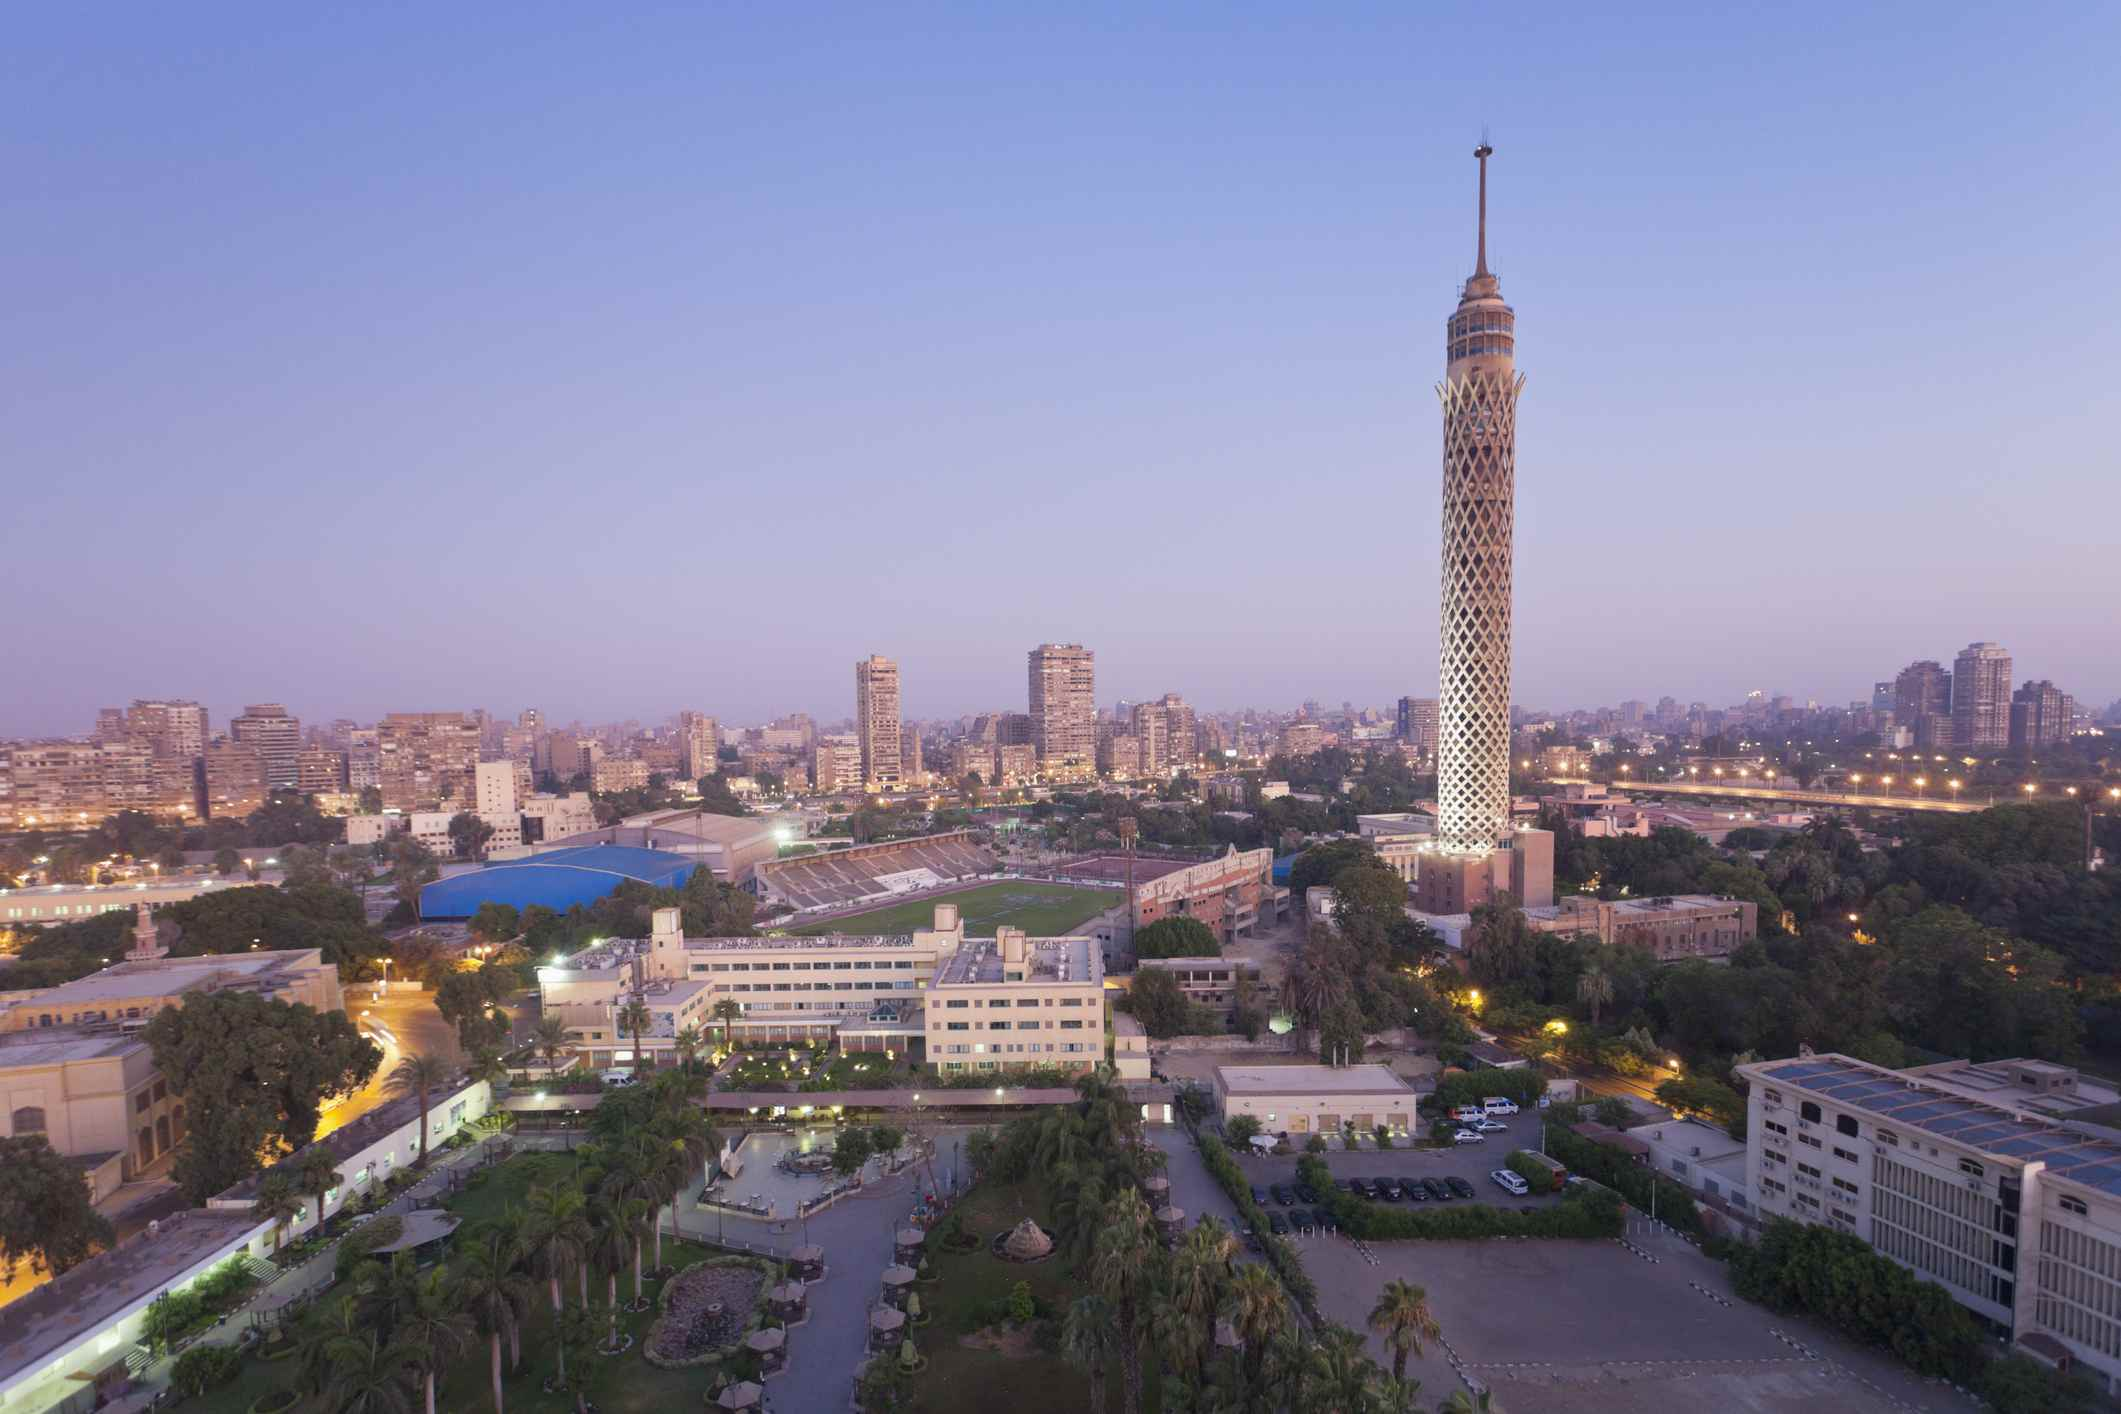 The Cairo Tower in Egypt